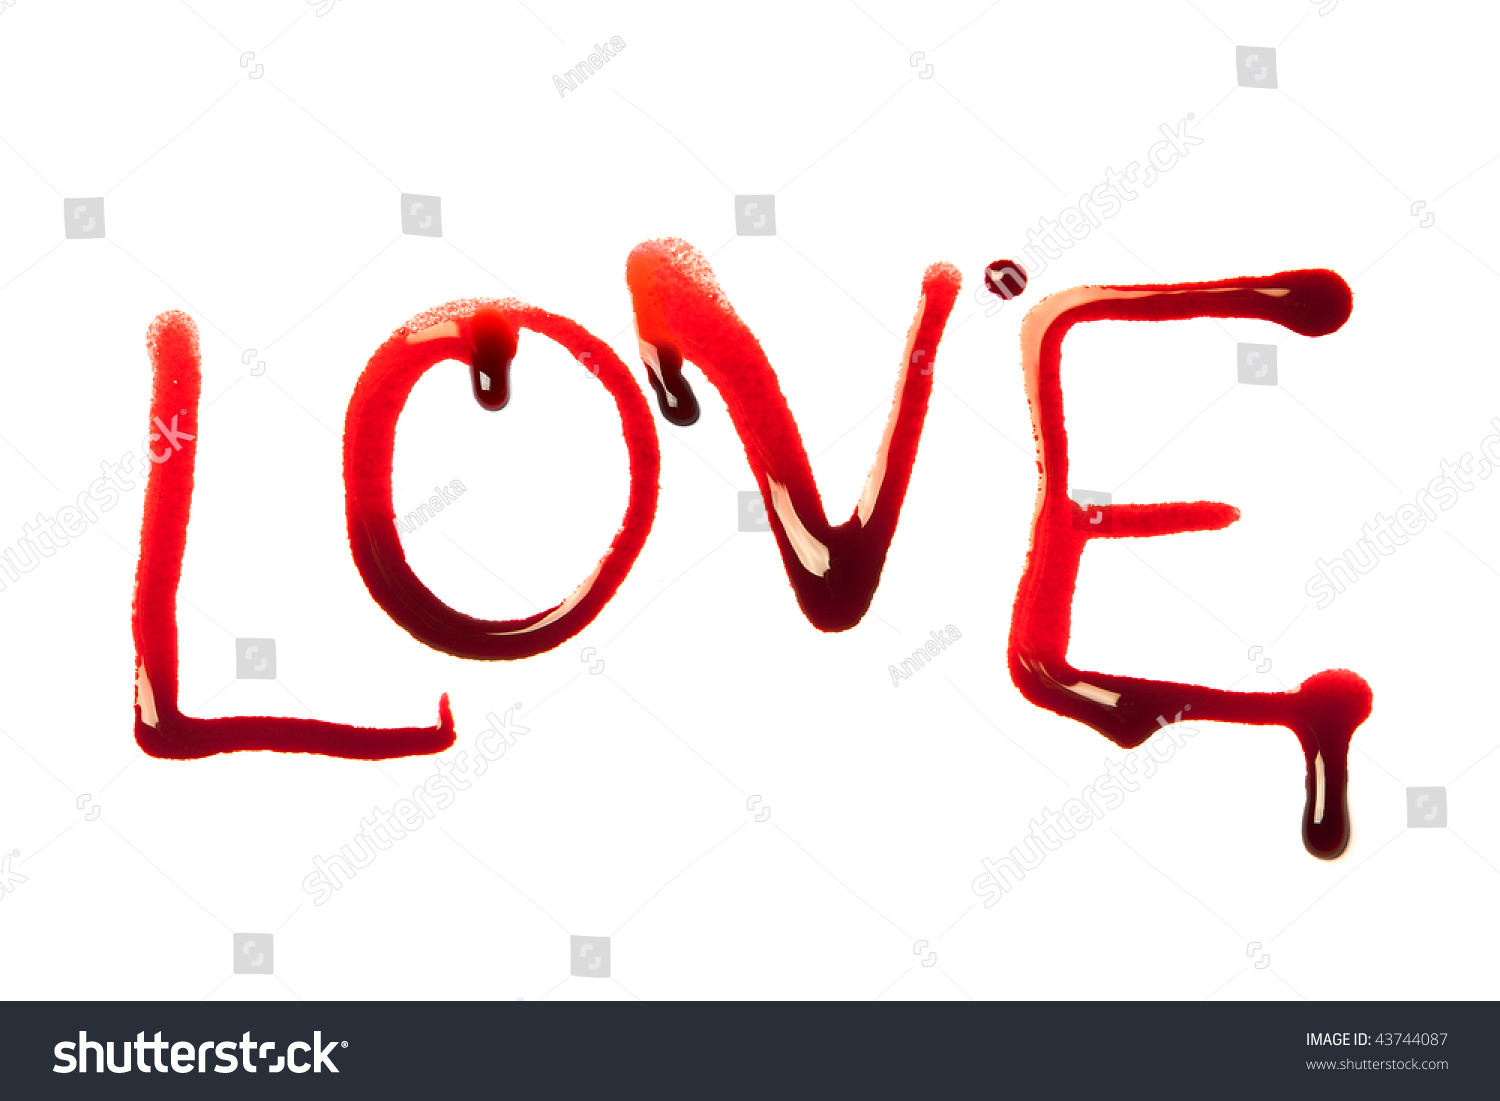 love word written letters dripping blood stock photo (royalty free